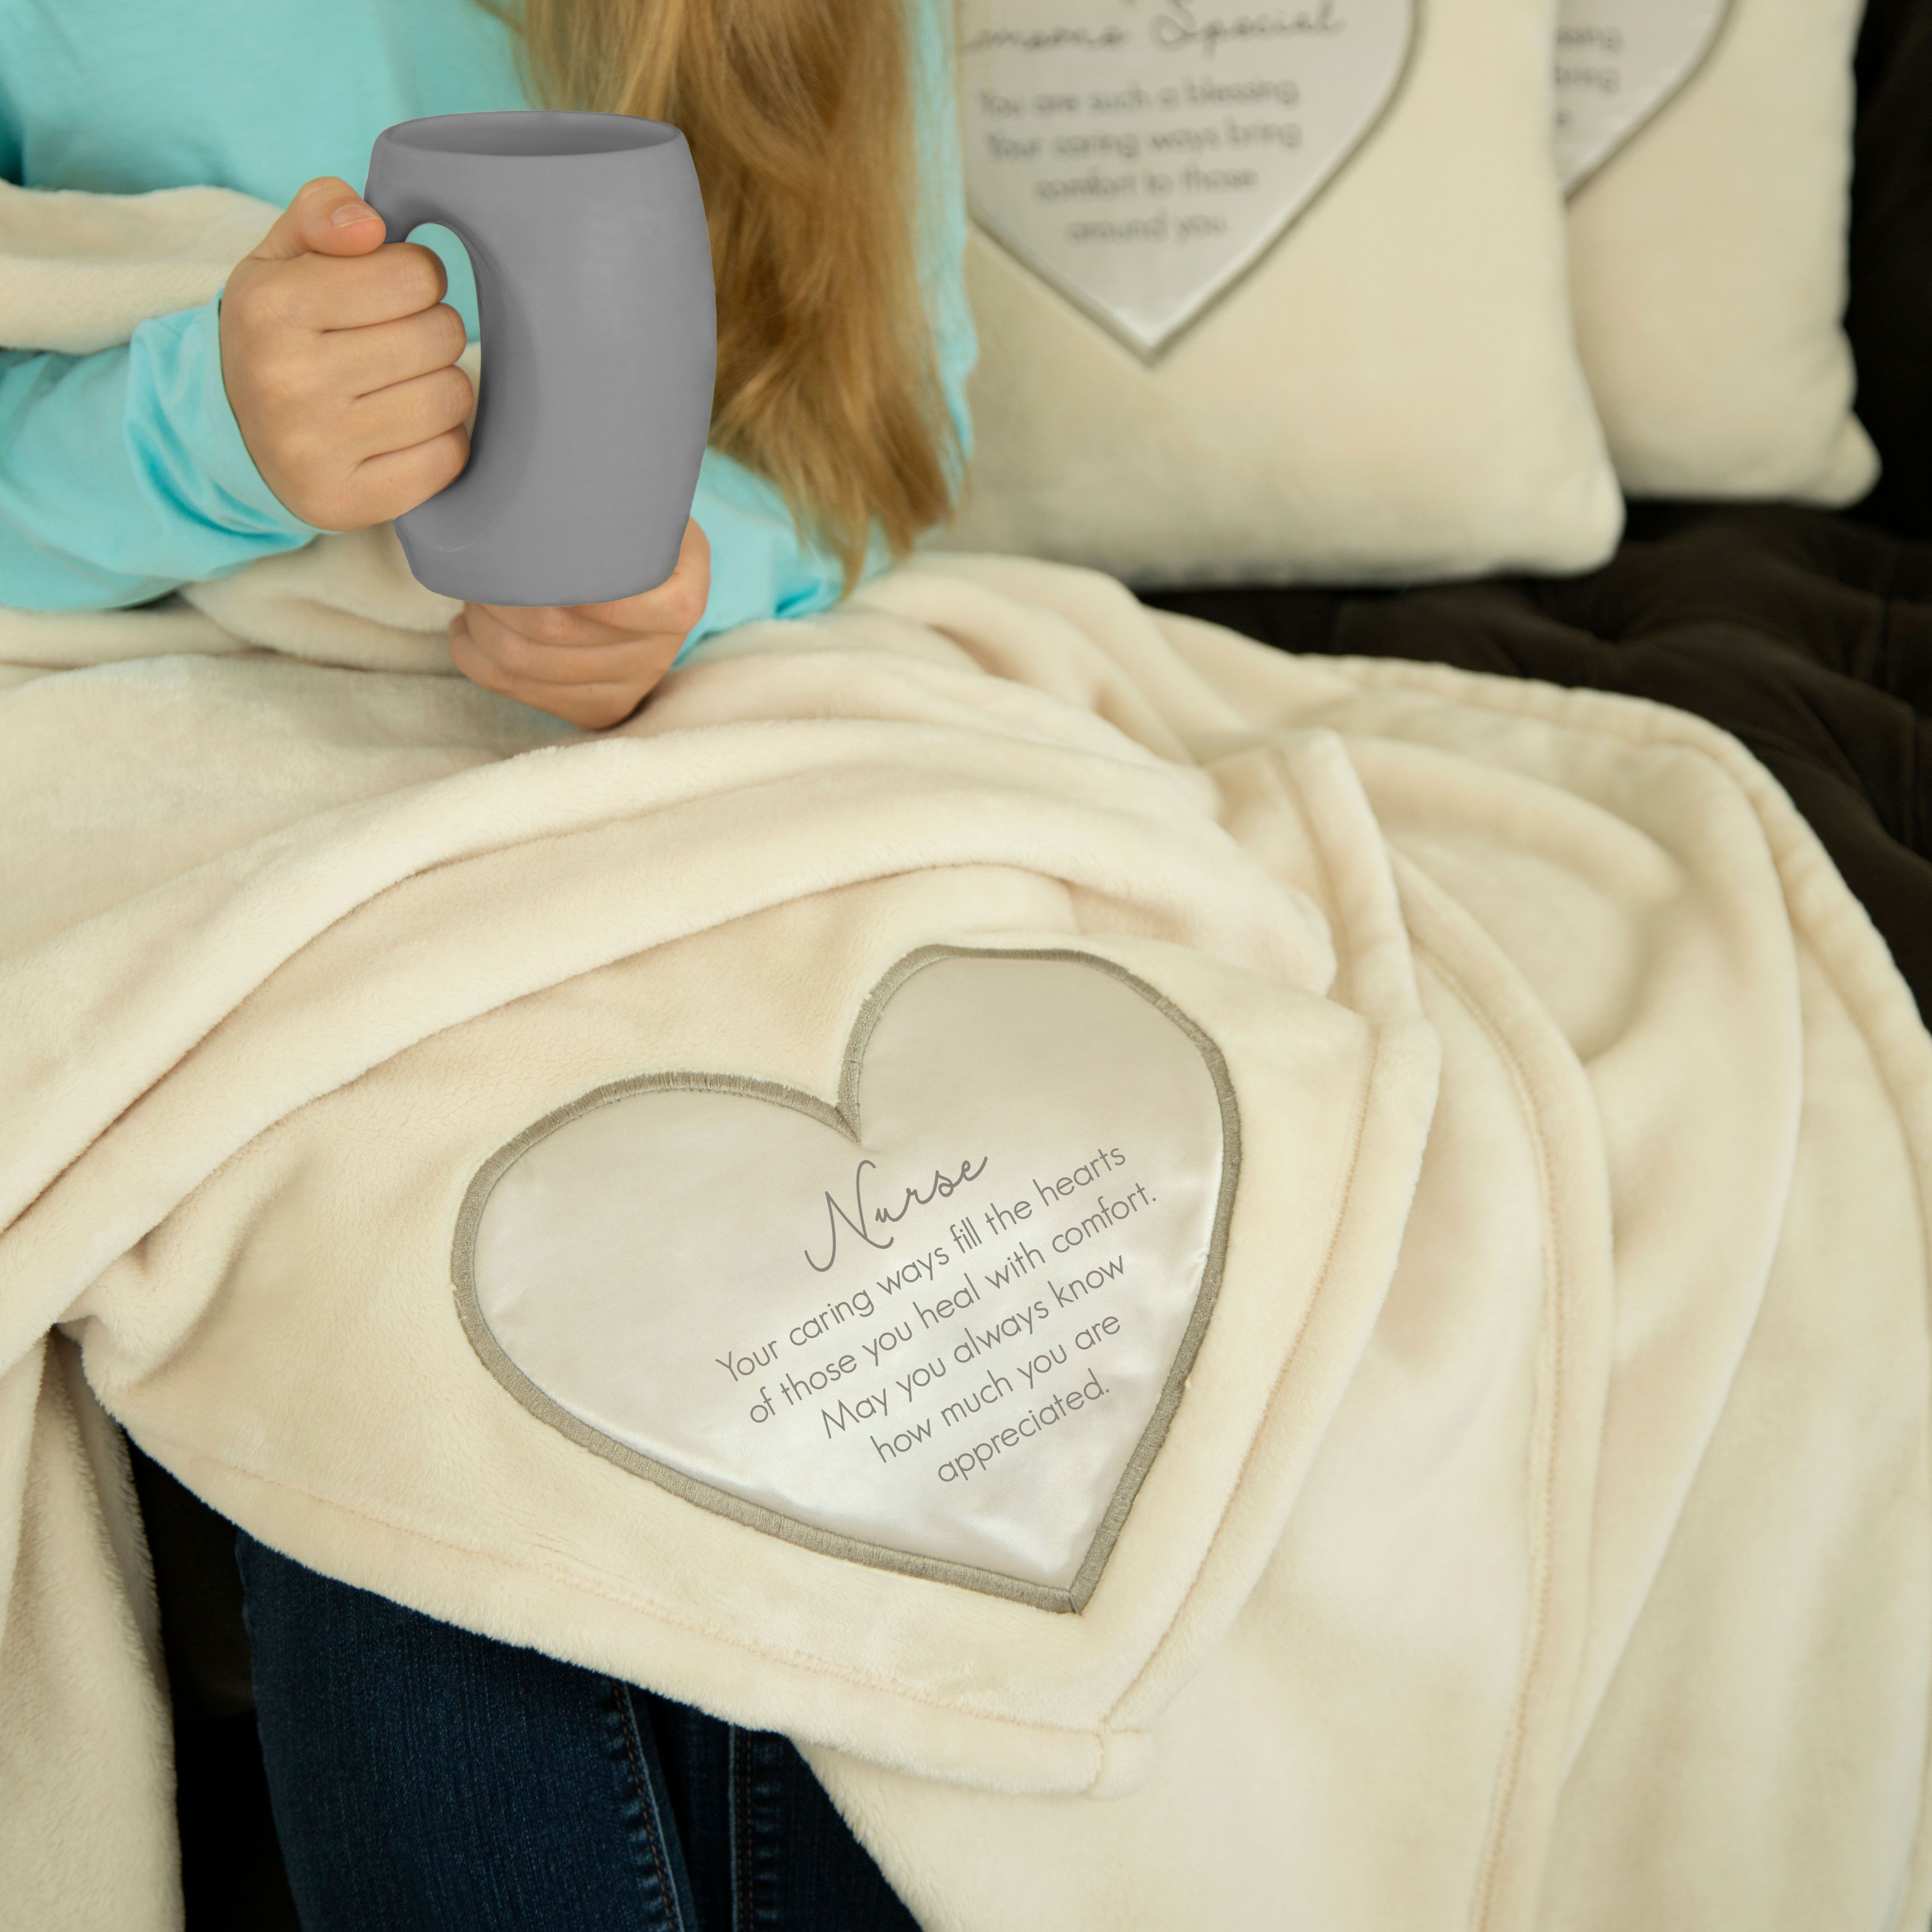 Pavilion Gift Company Granddaughter Royal Plush Blanket May You Always Find Comfort Knowing You are Very Special and Loved So Very Much